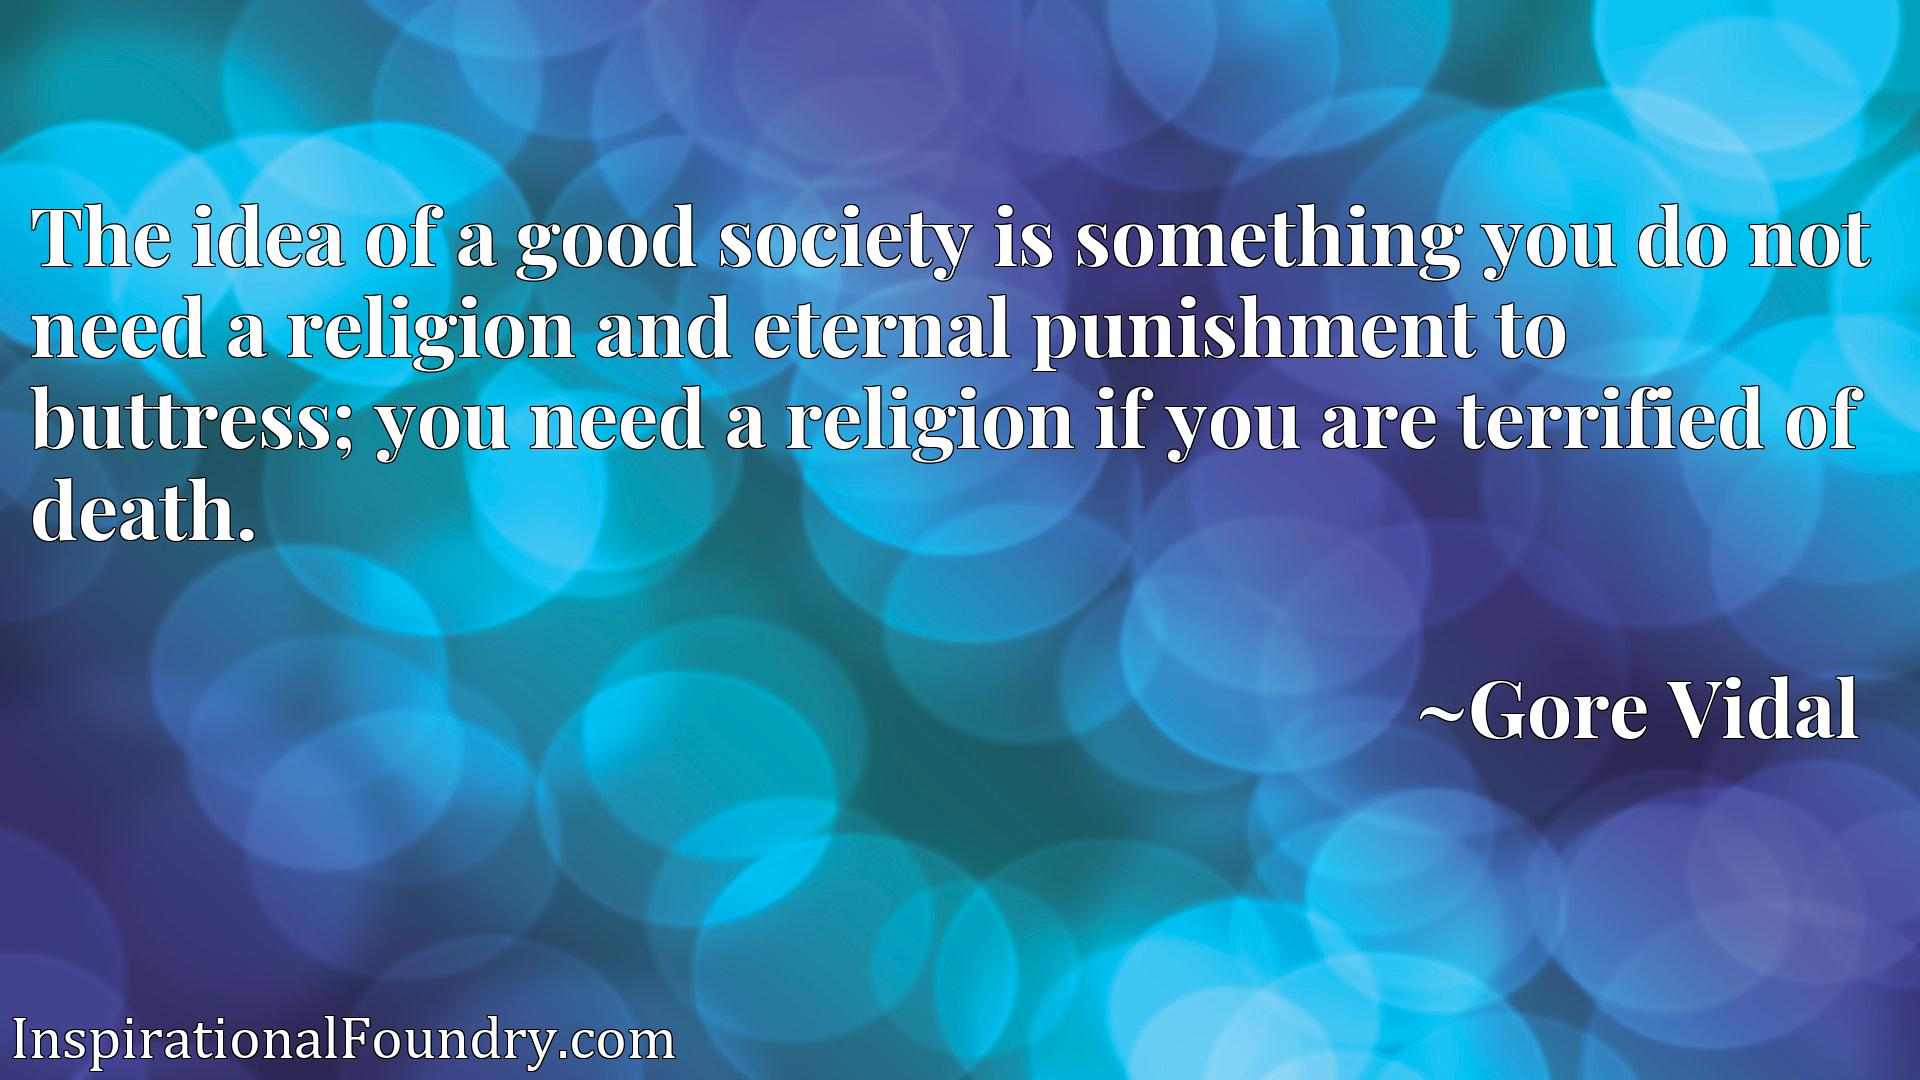 The idea of a good society is something you do not need a religion and eternal punishment to buttress; you need a religion if you are terrified of death.